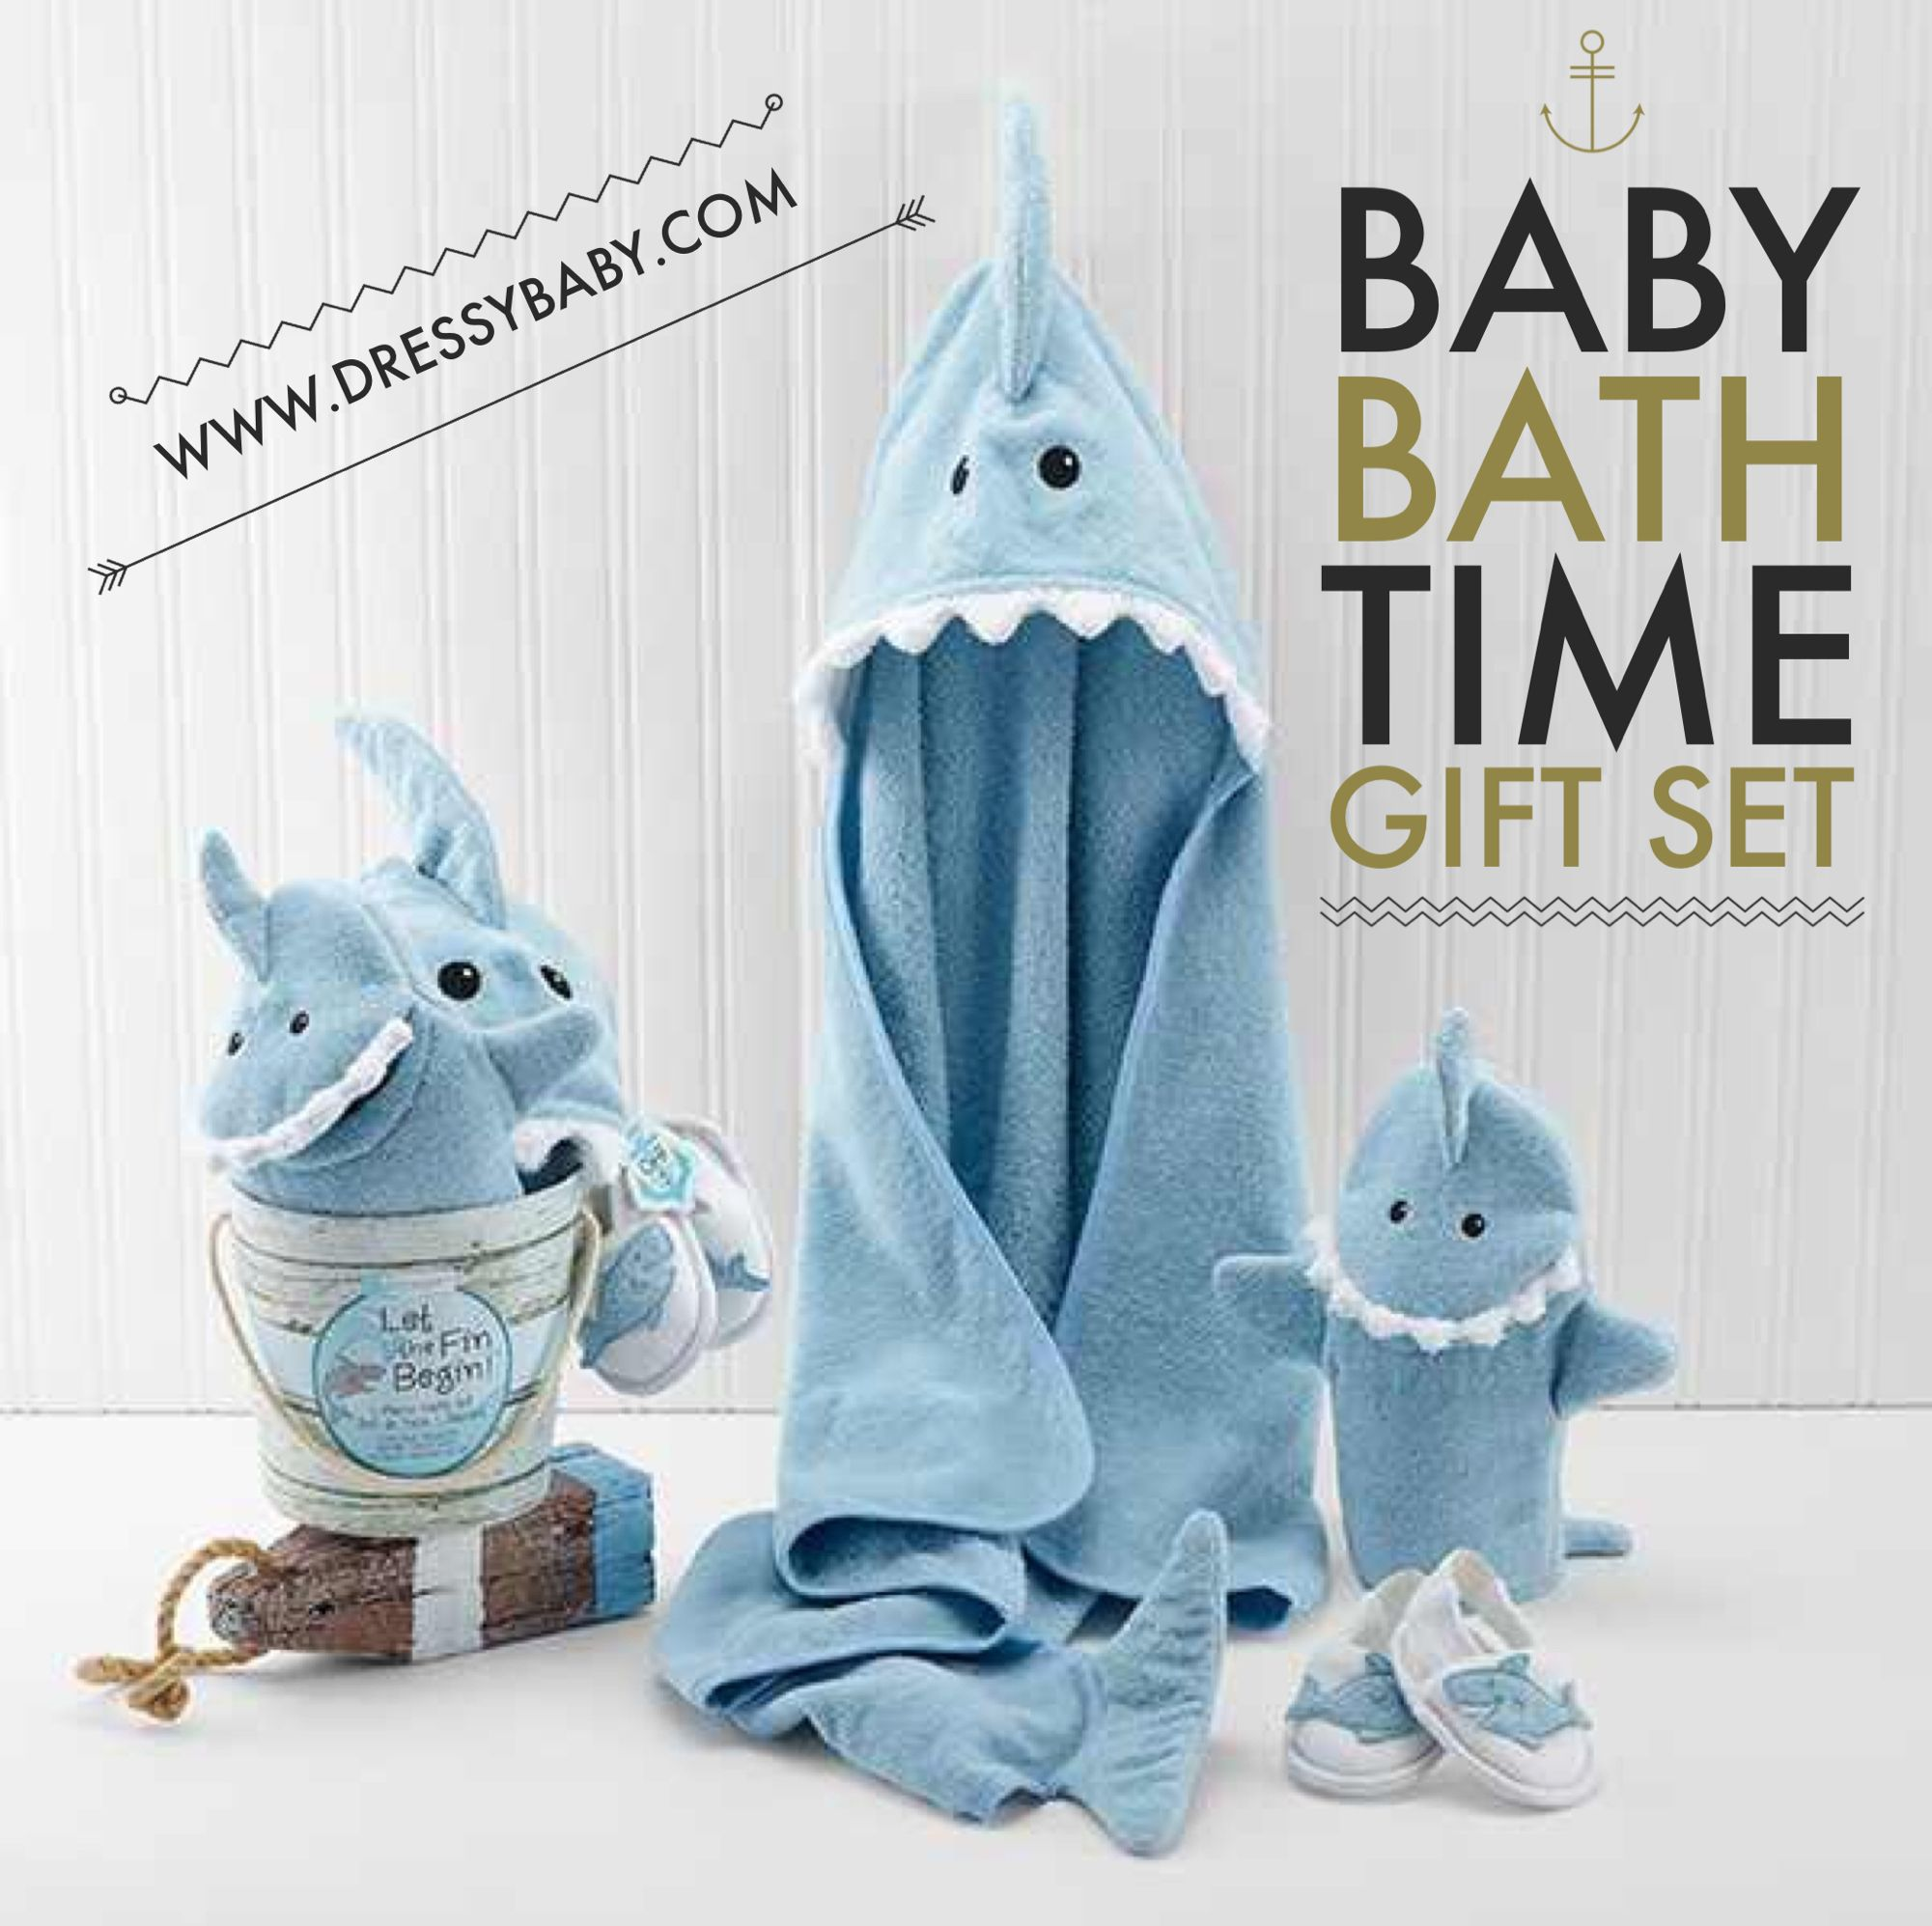 Baby Boy Shark Bath Time Fun Gift Set. Available at: www.DressyBaby ...